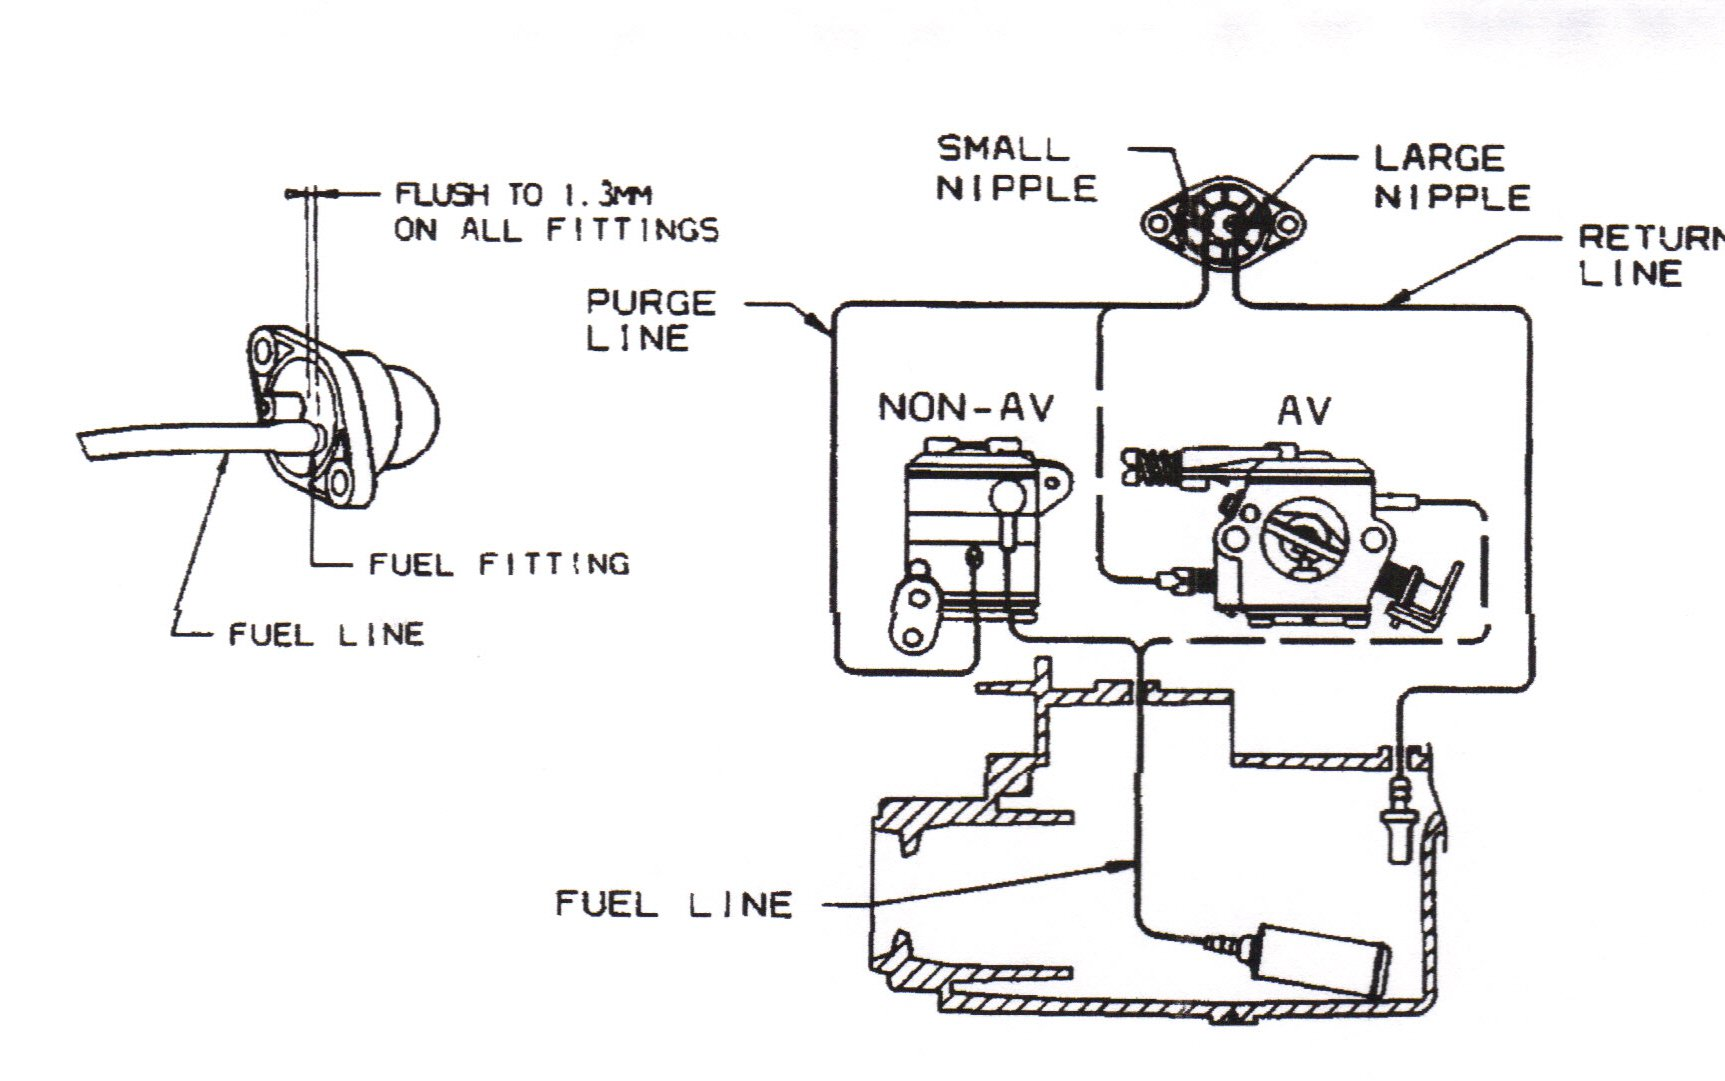 replace fuel lines on 110g john deere trimmer